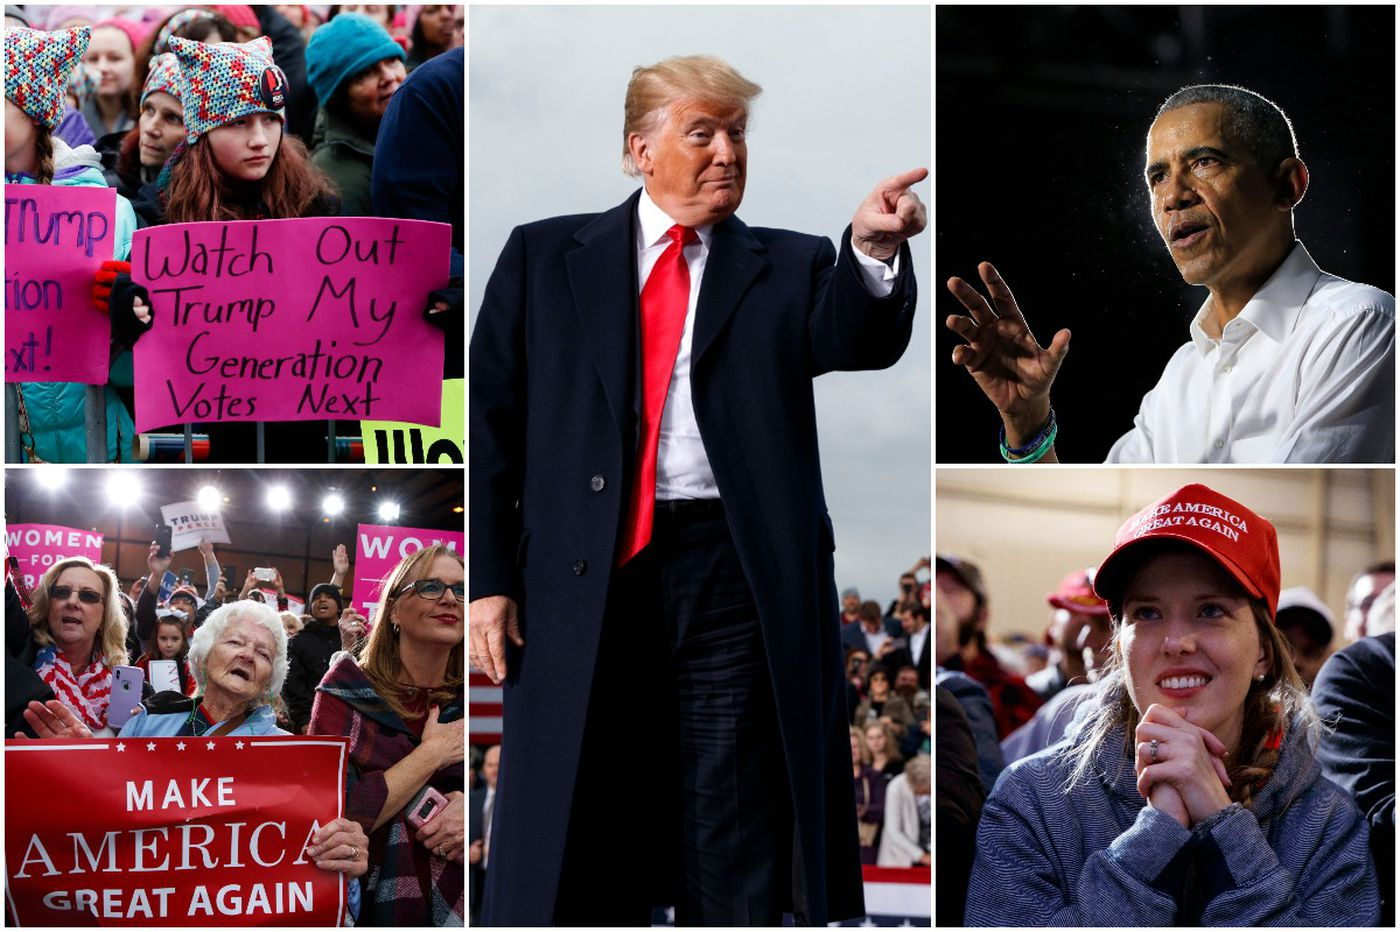 Anxious, angry, divided, voters go to the polls for a midterm of rare intensity